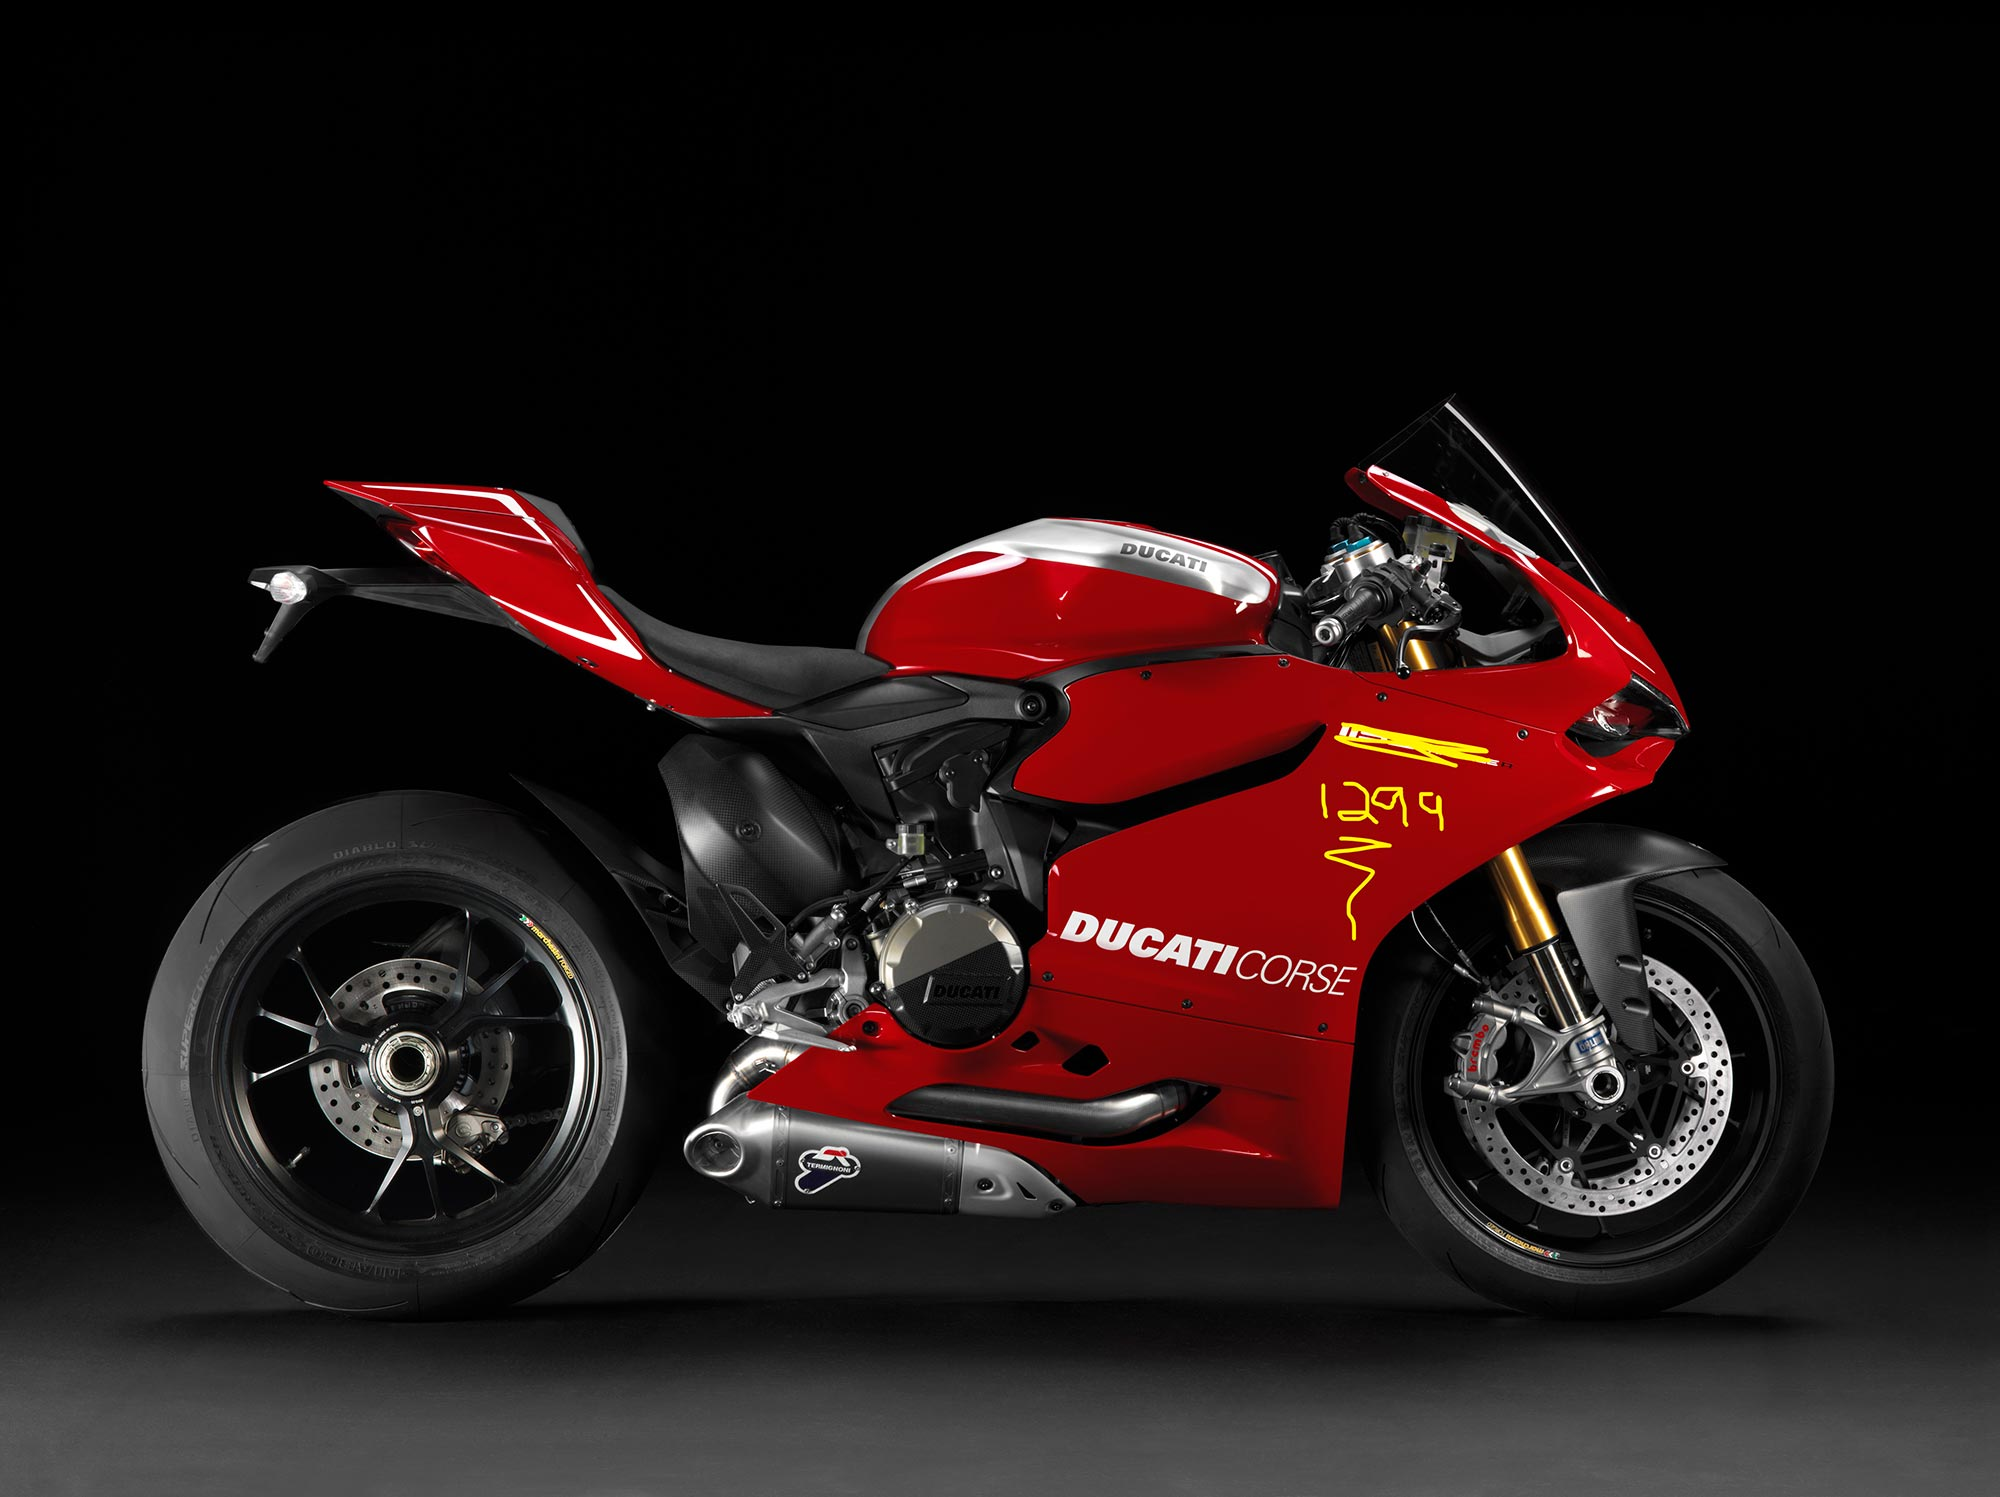 Ducati Panigale 1200cc >> Ducati Owners: You Are Not Ready for the 1299 Superbike ...